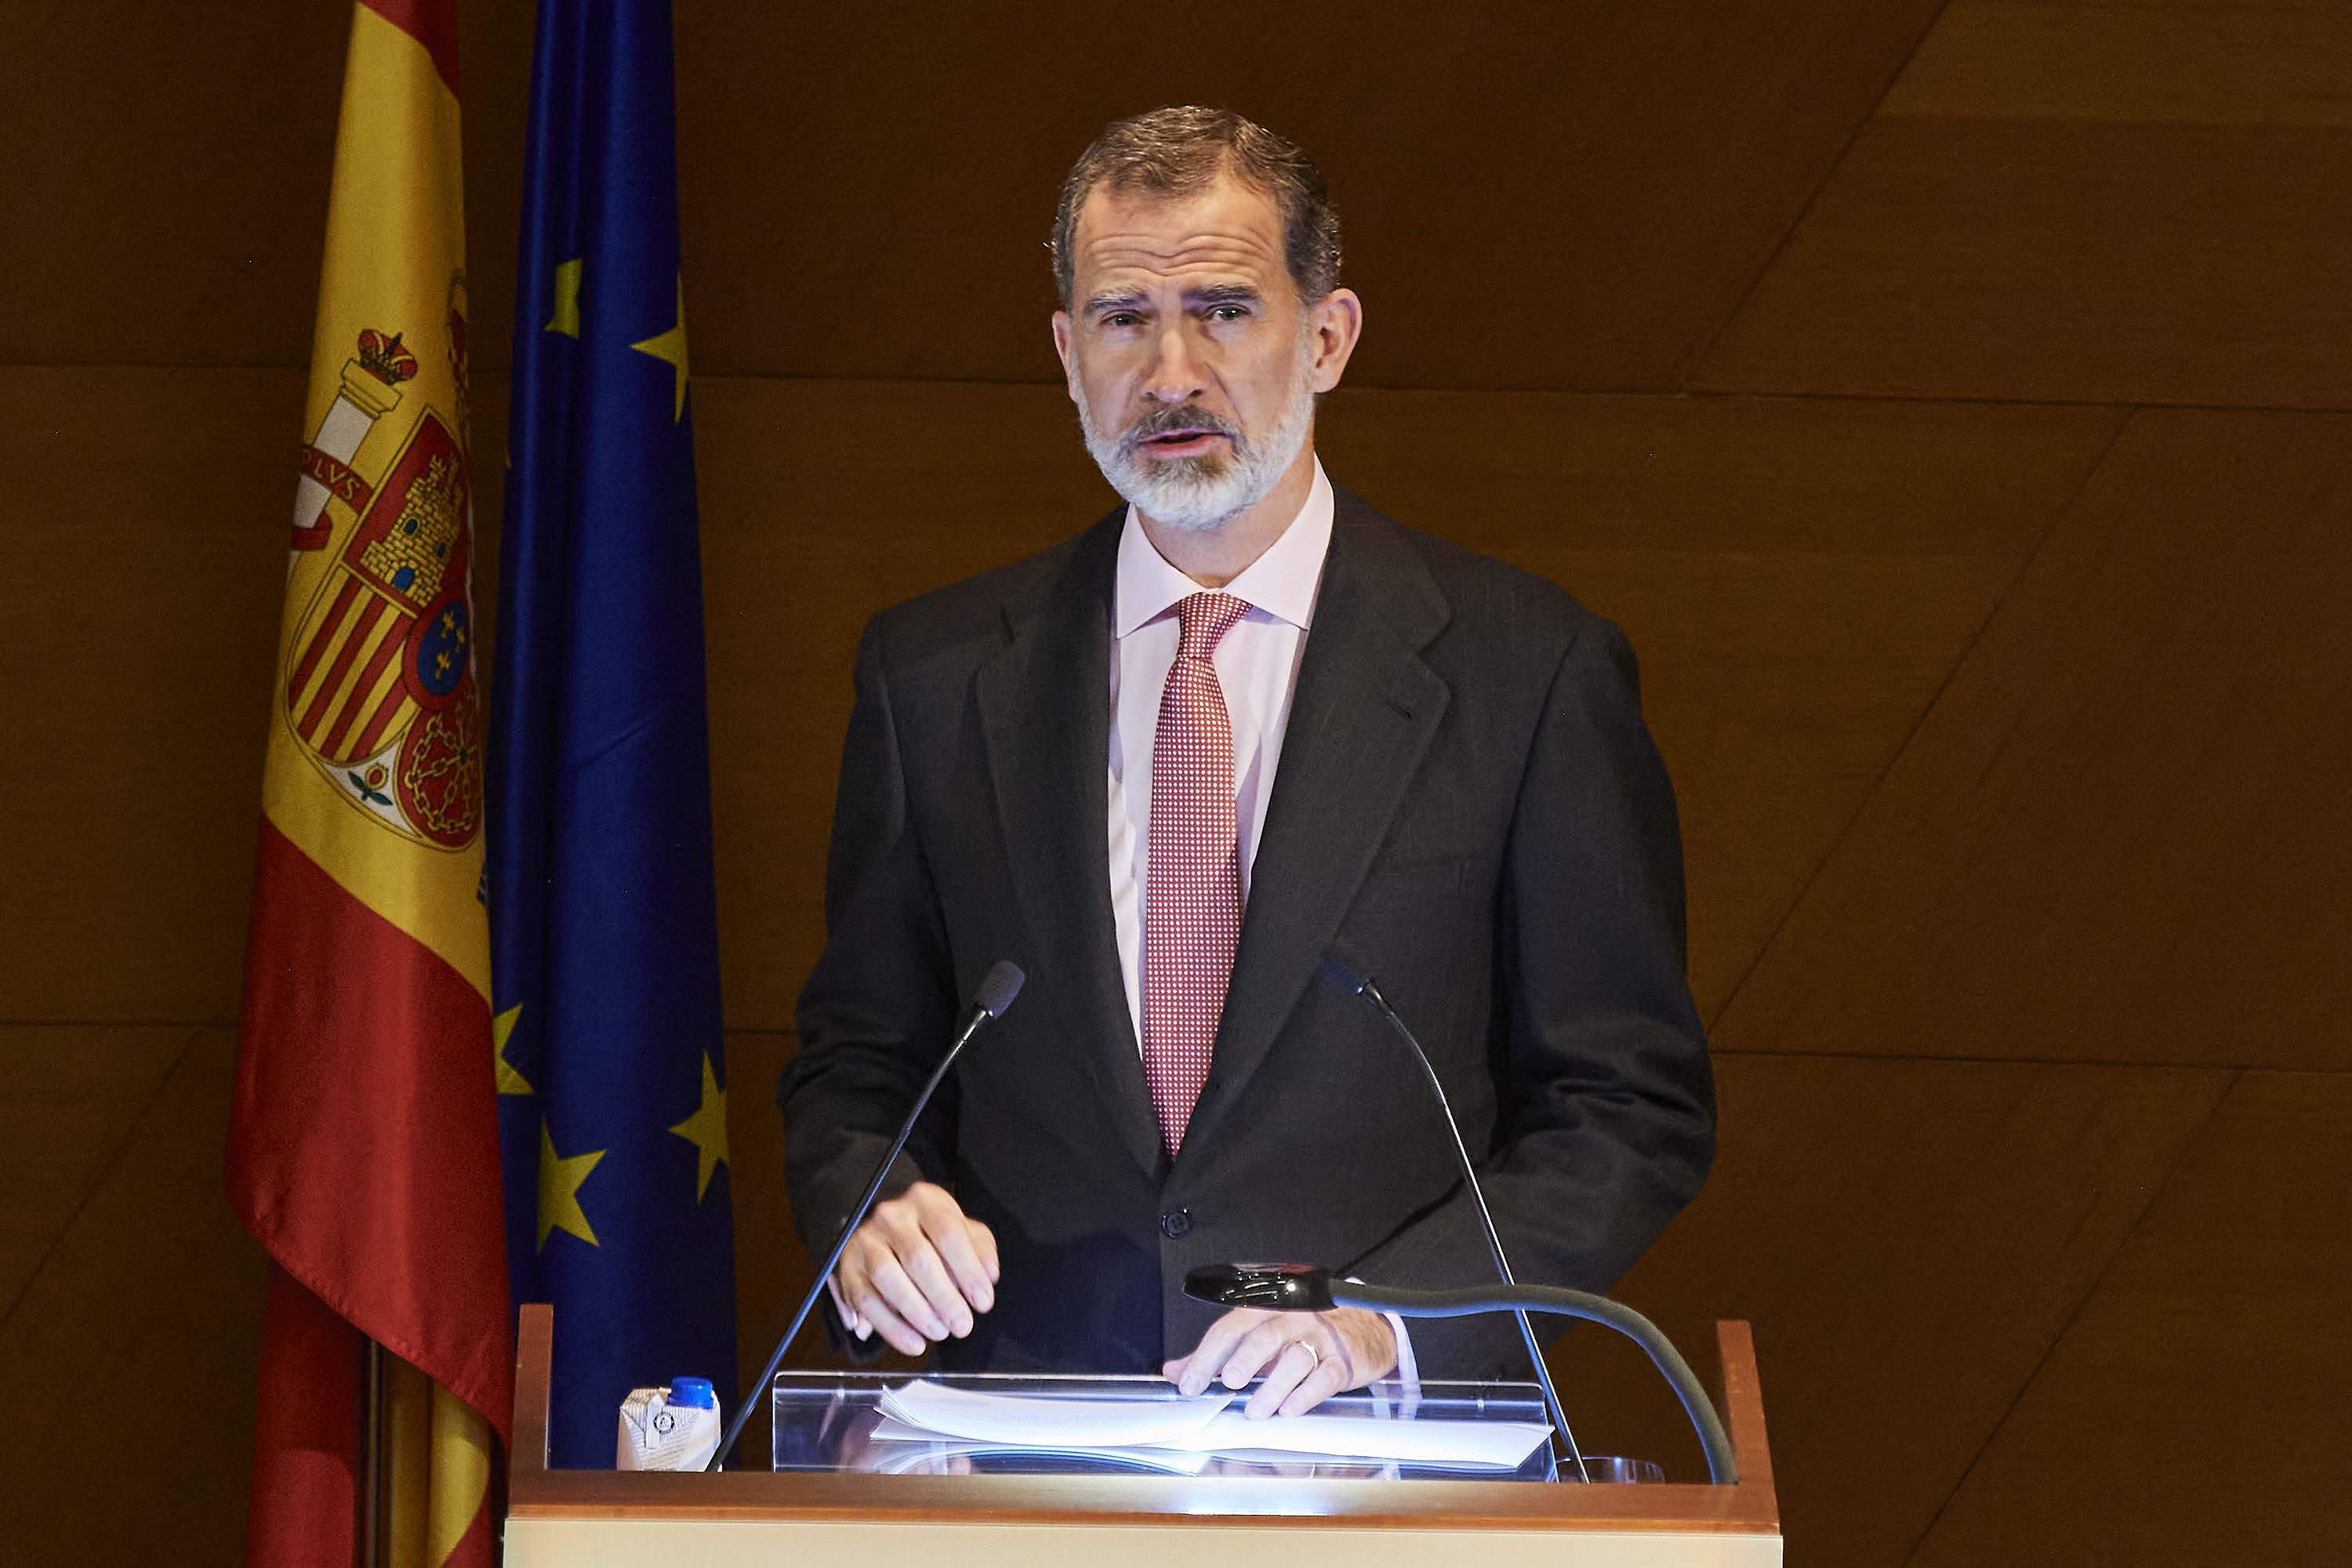 King Felipe VI of Spain is pictured at an awards event in Madrid on November 18.